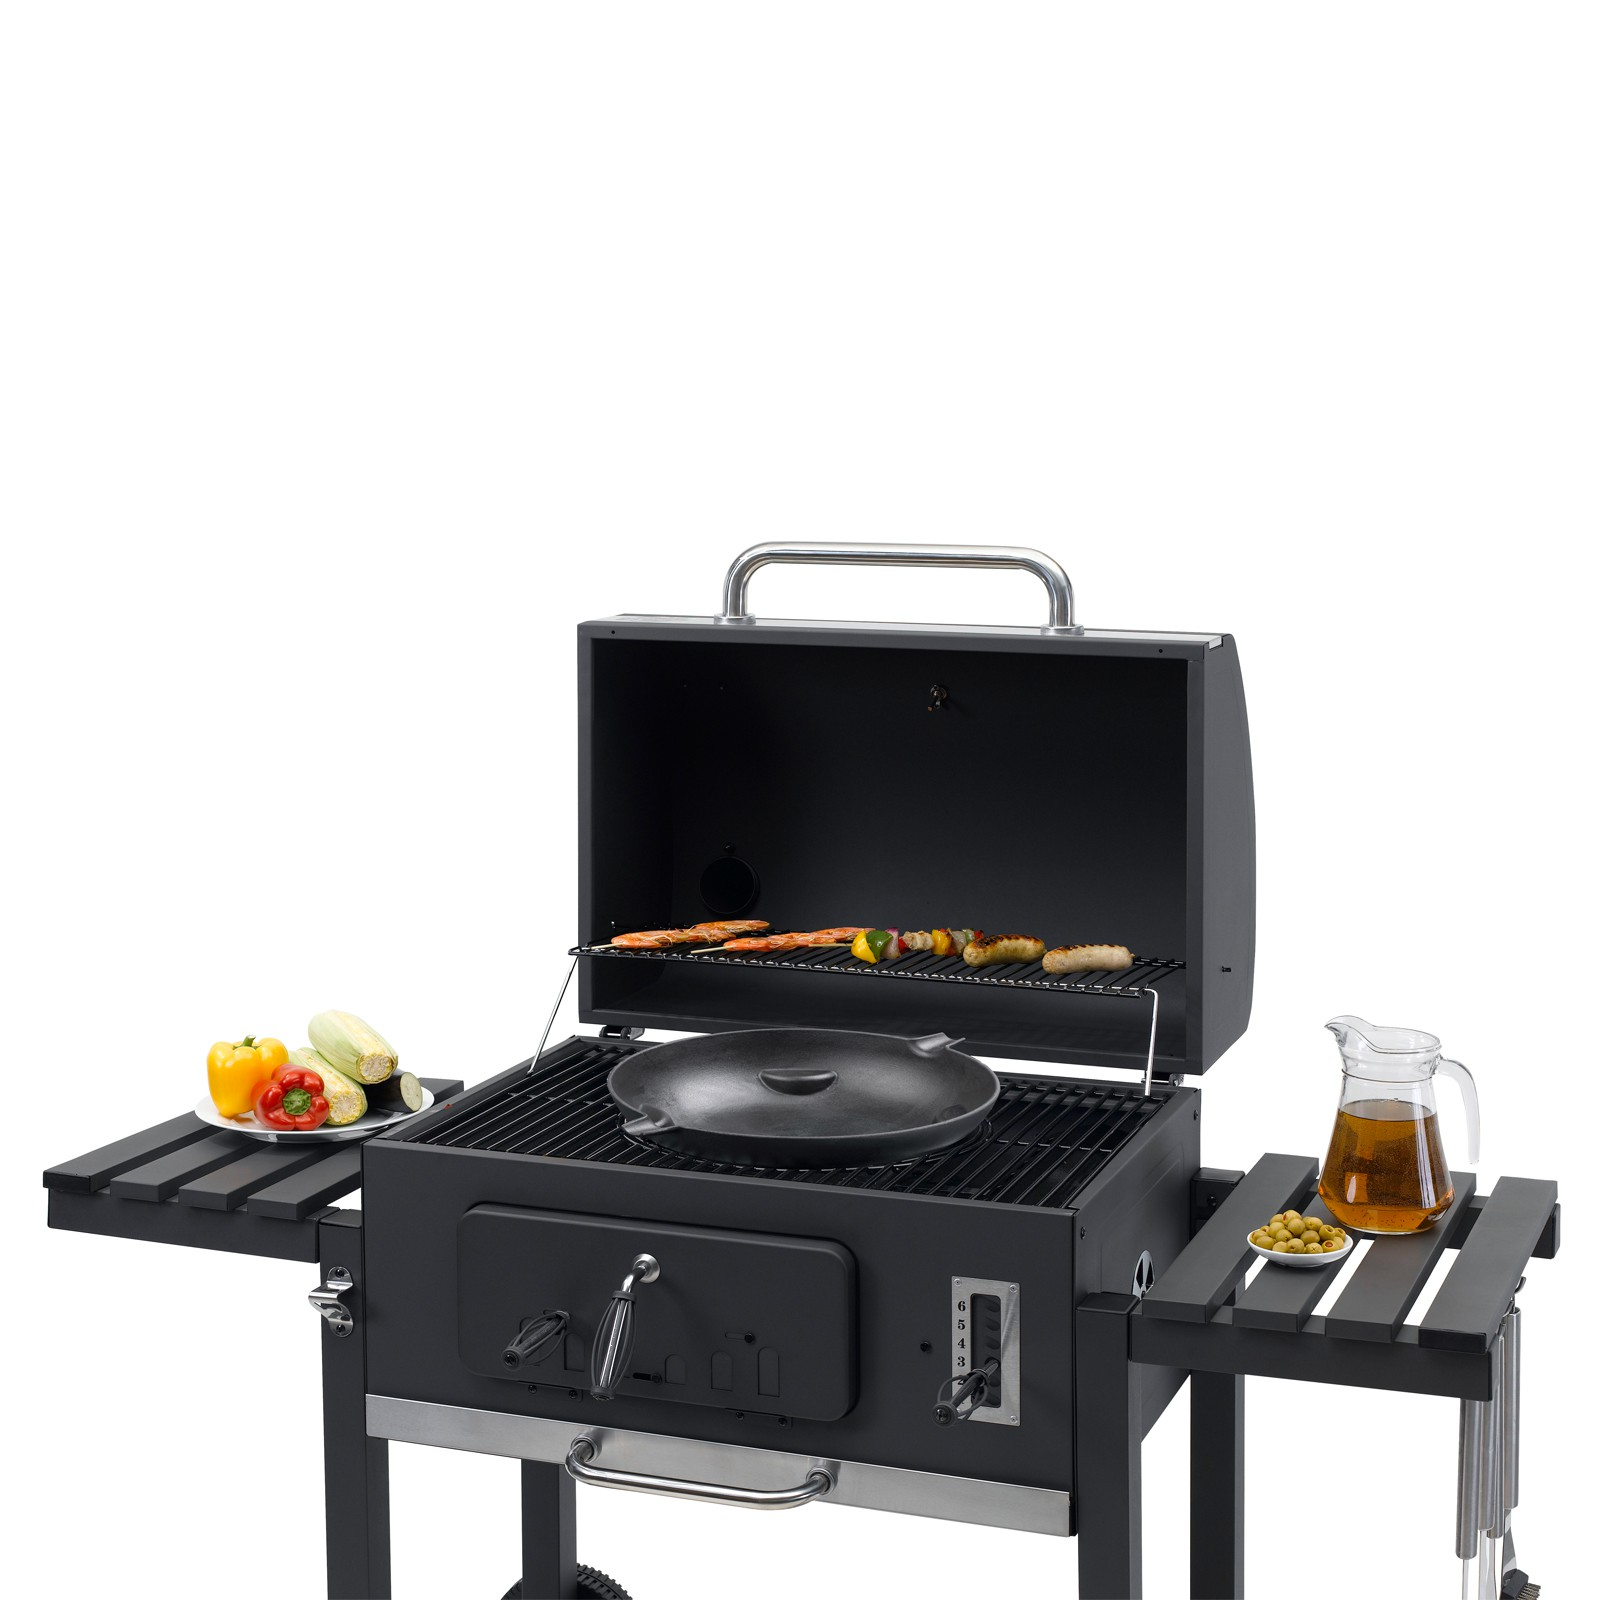 tepro holzkohlengrill grillwagen toronto xxl. Black Bedroom Furniture Sets. Home Design Ideas